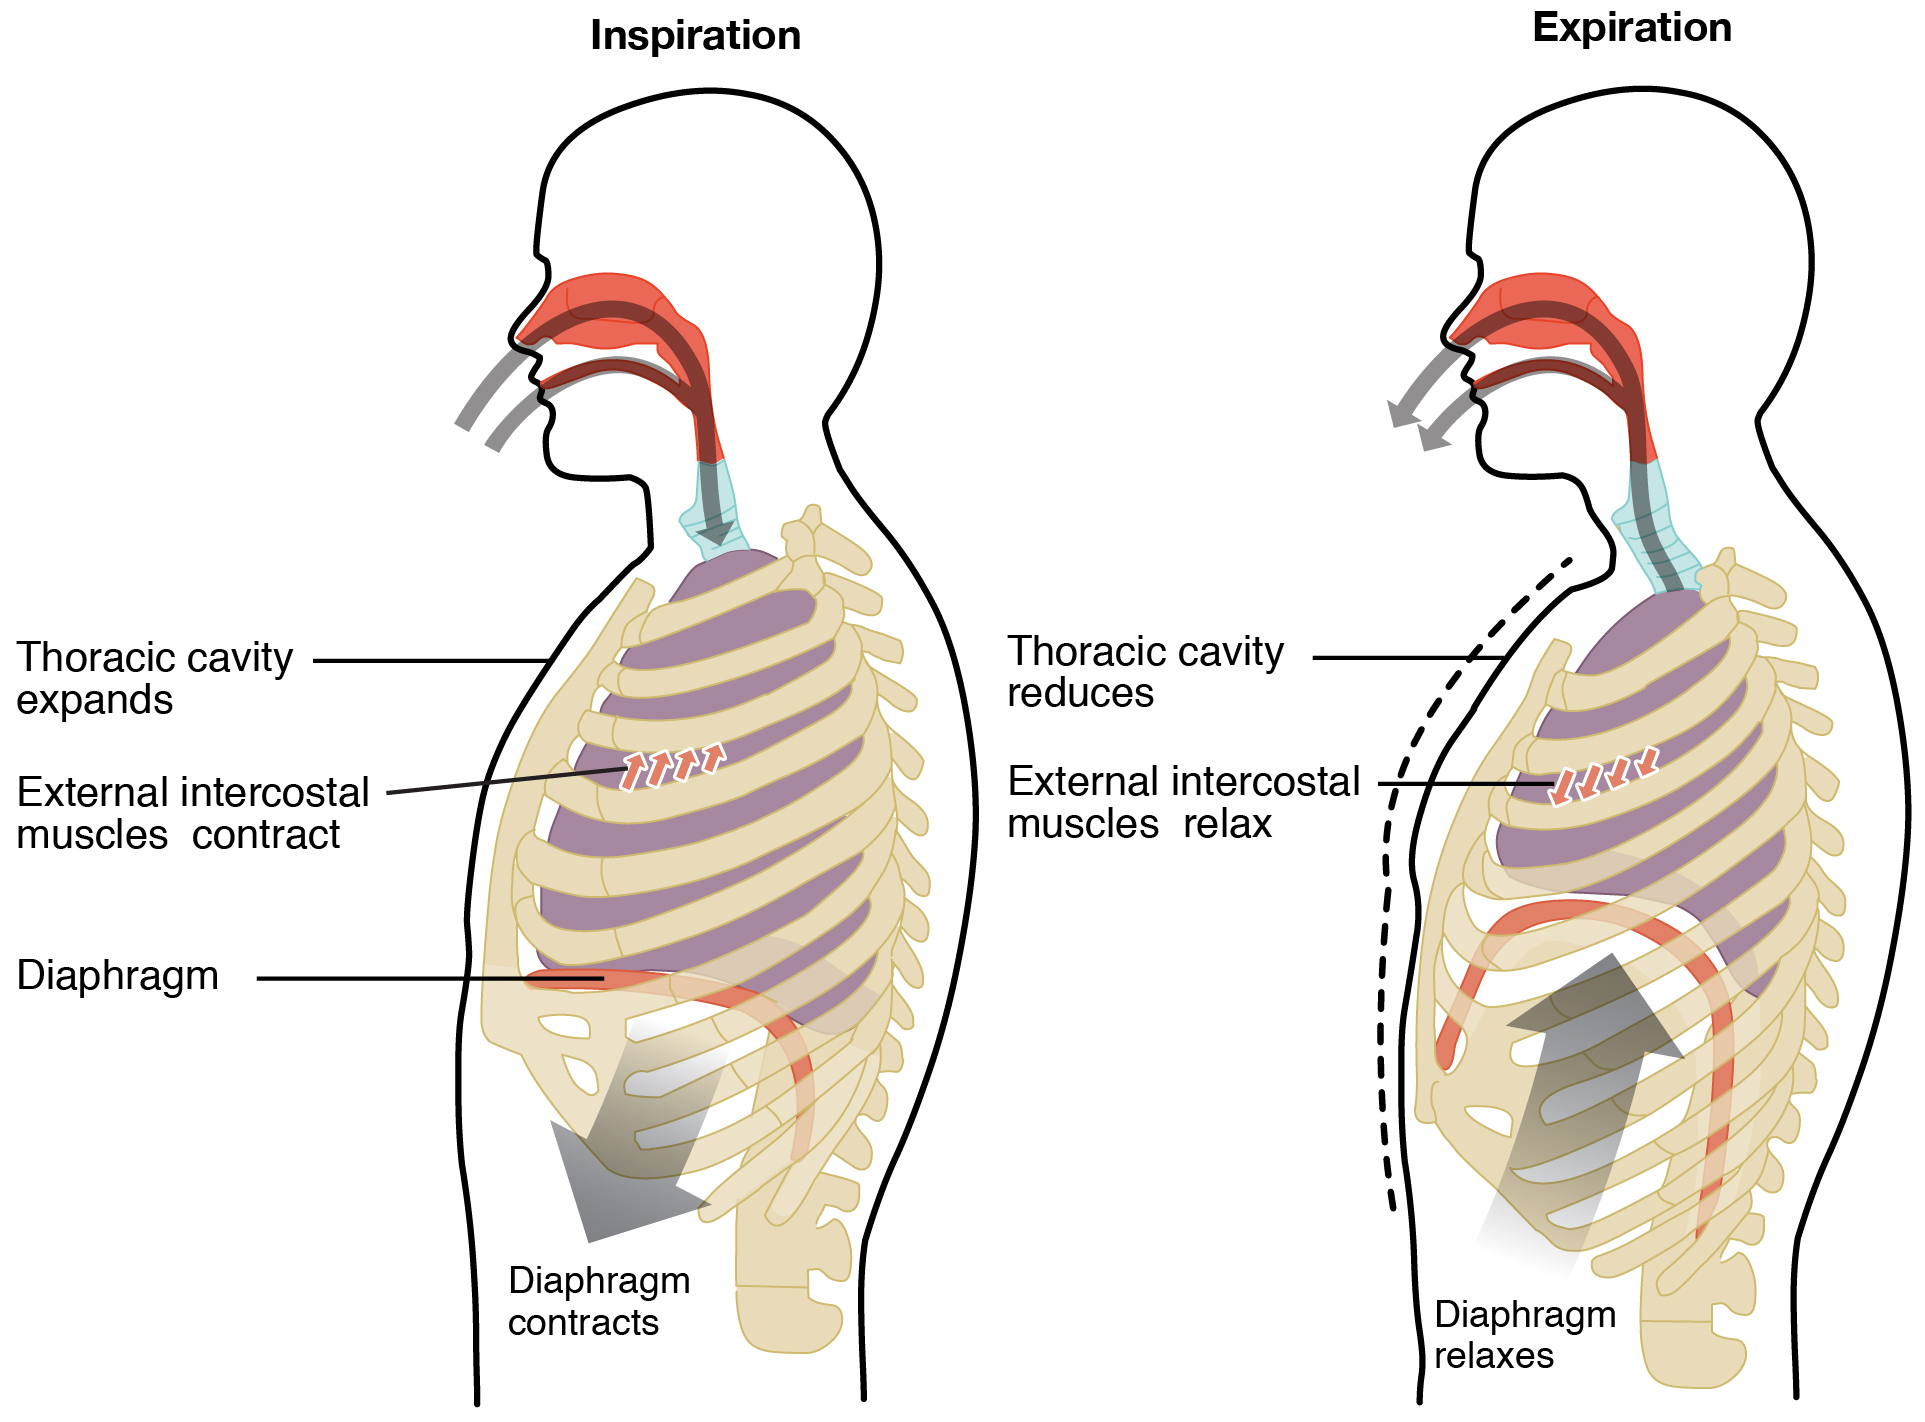 Lung functions and control of breathing